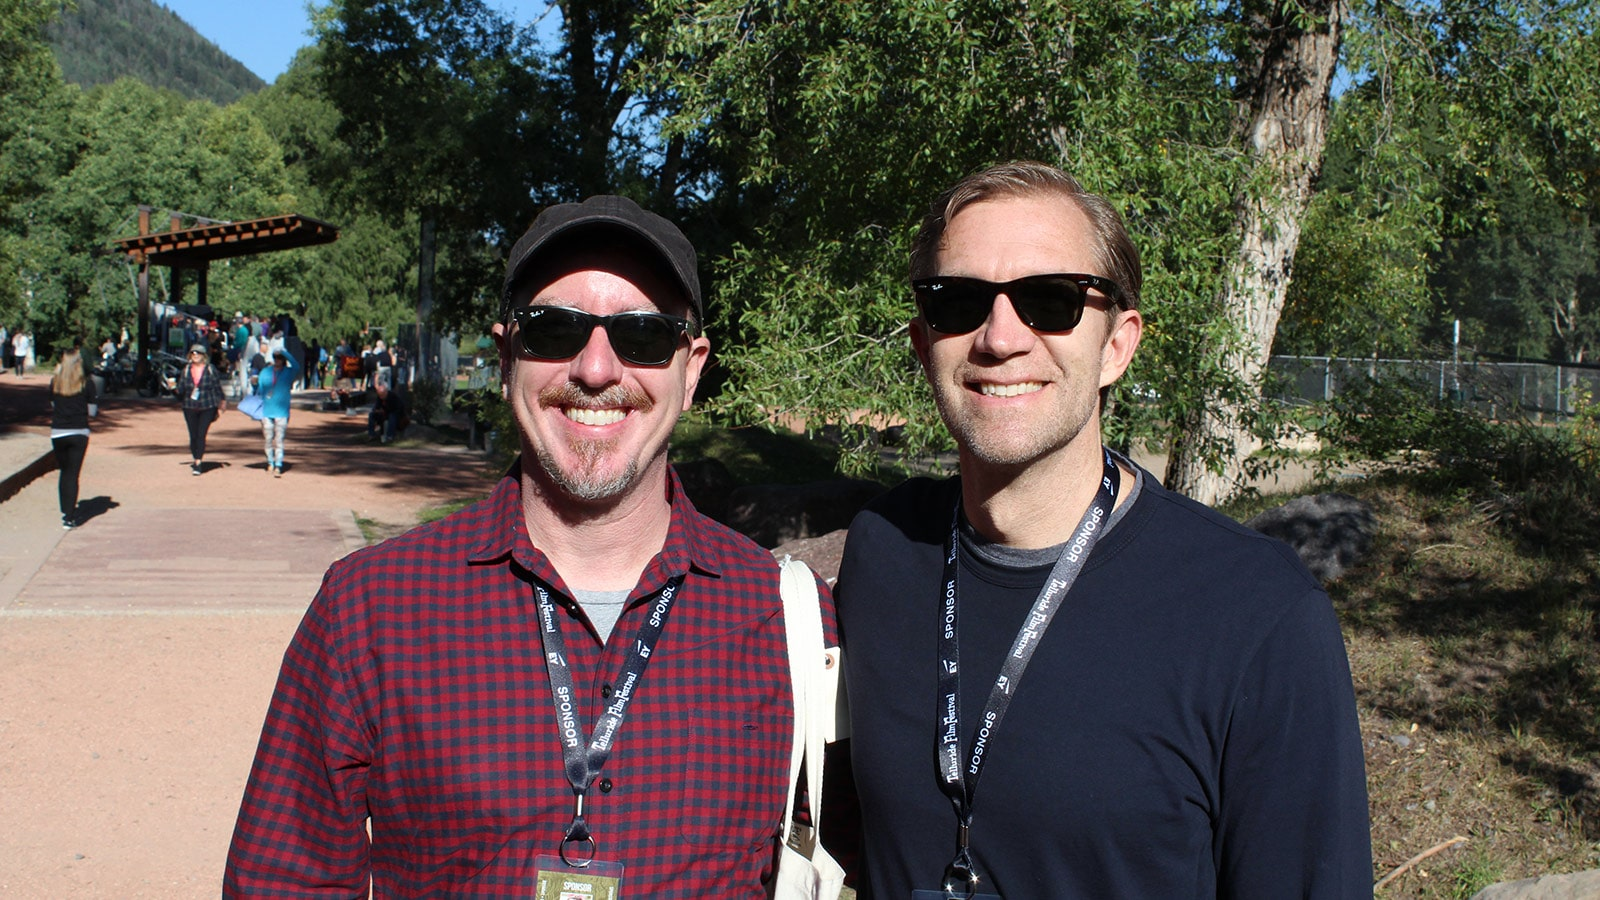 Dolby Institute Director Glenn Kiser and Joshua Lowden of Skywalker Sound in line to see Darkest Hour at the Herzog Theatre.